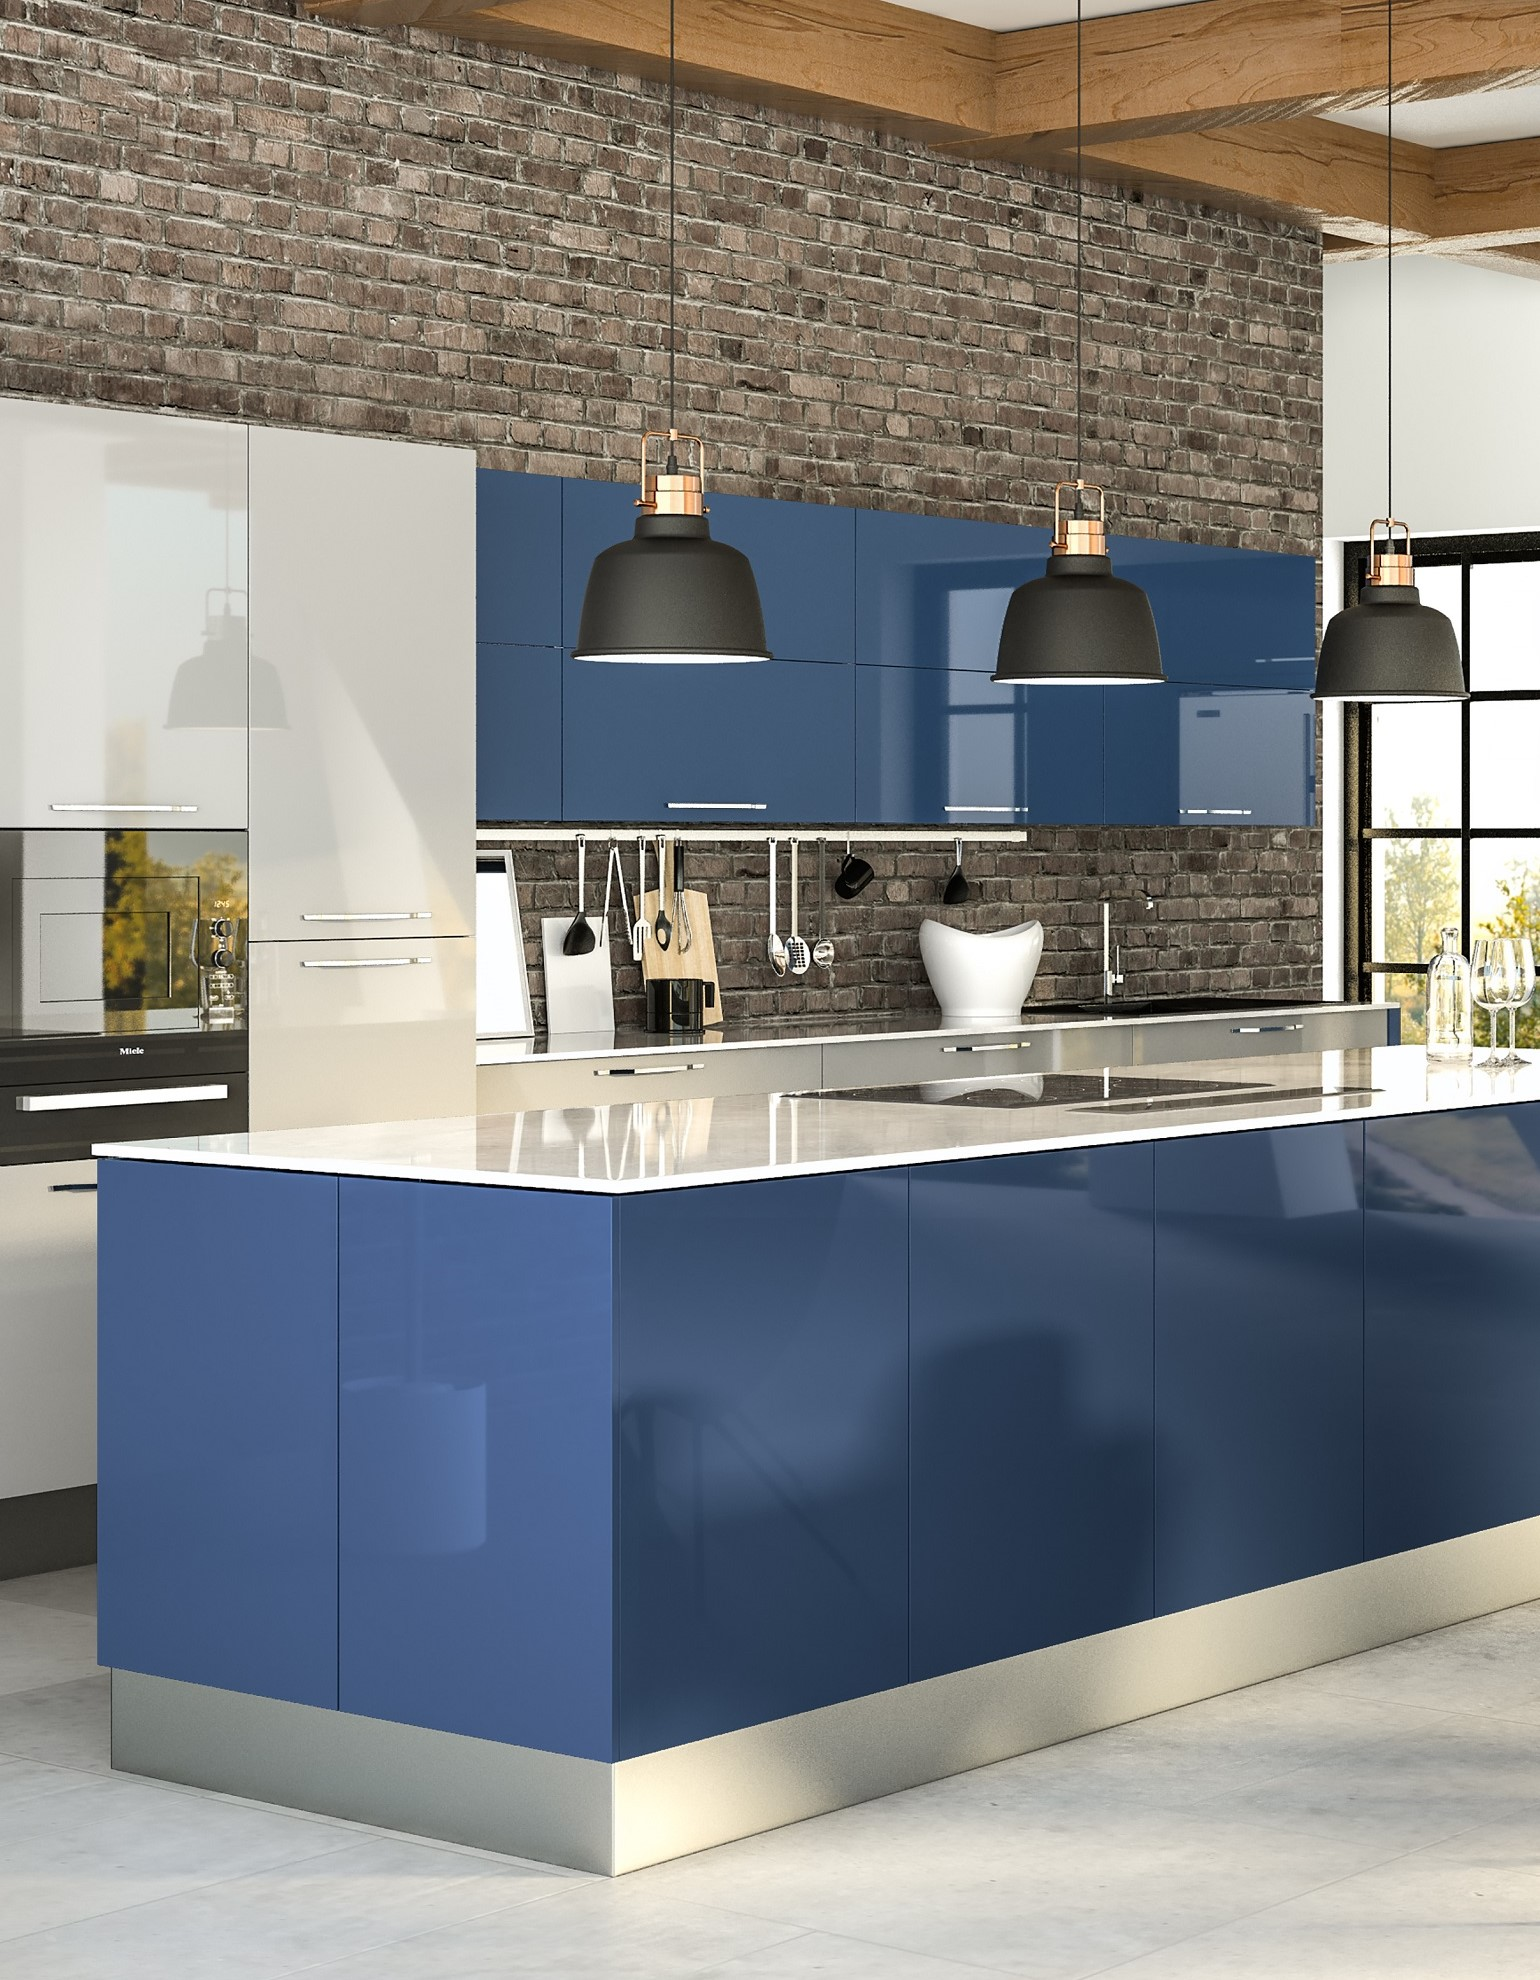 Ultragloss Baltic Blue Ultragloss Light Grey Kitchen